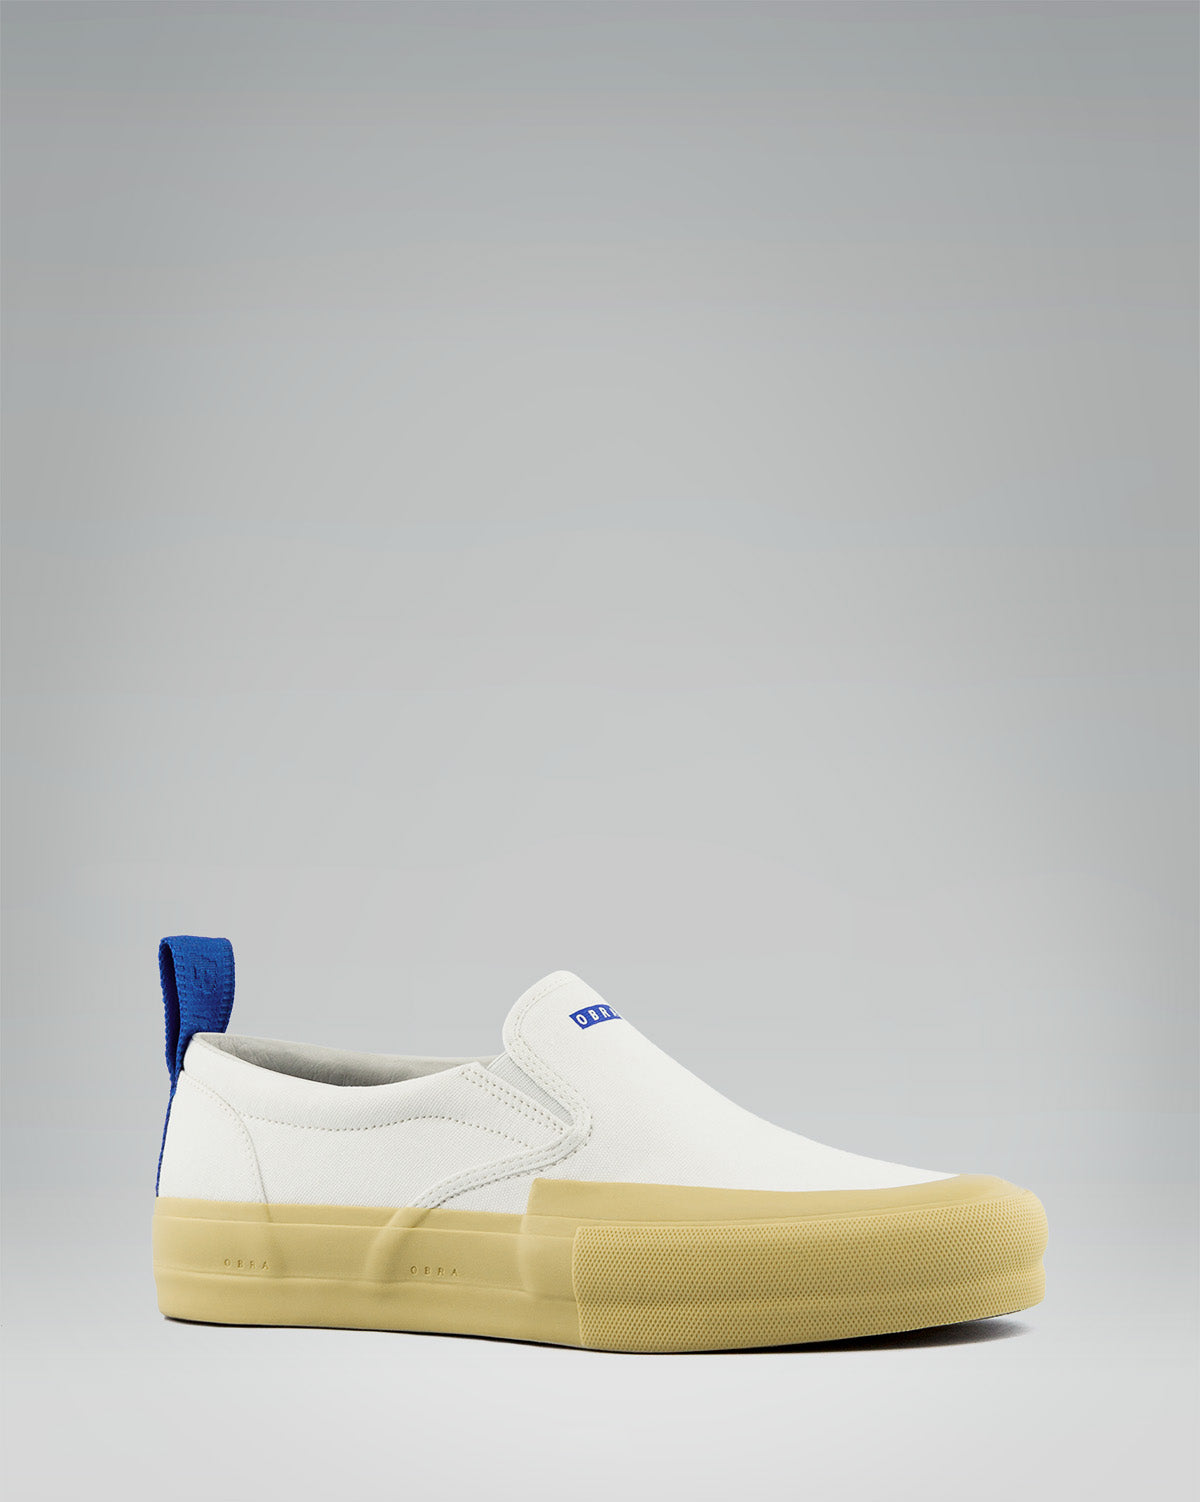 240 CANVAS SLIP-ON WRAP TOE<br />White/Sand/OBRA Blue